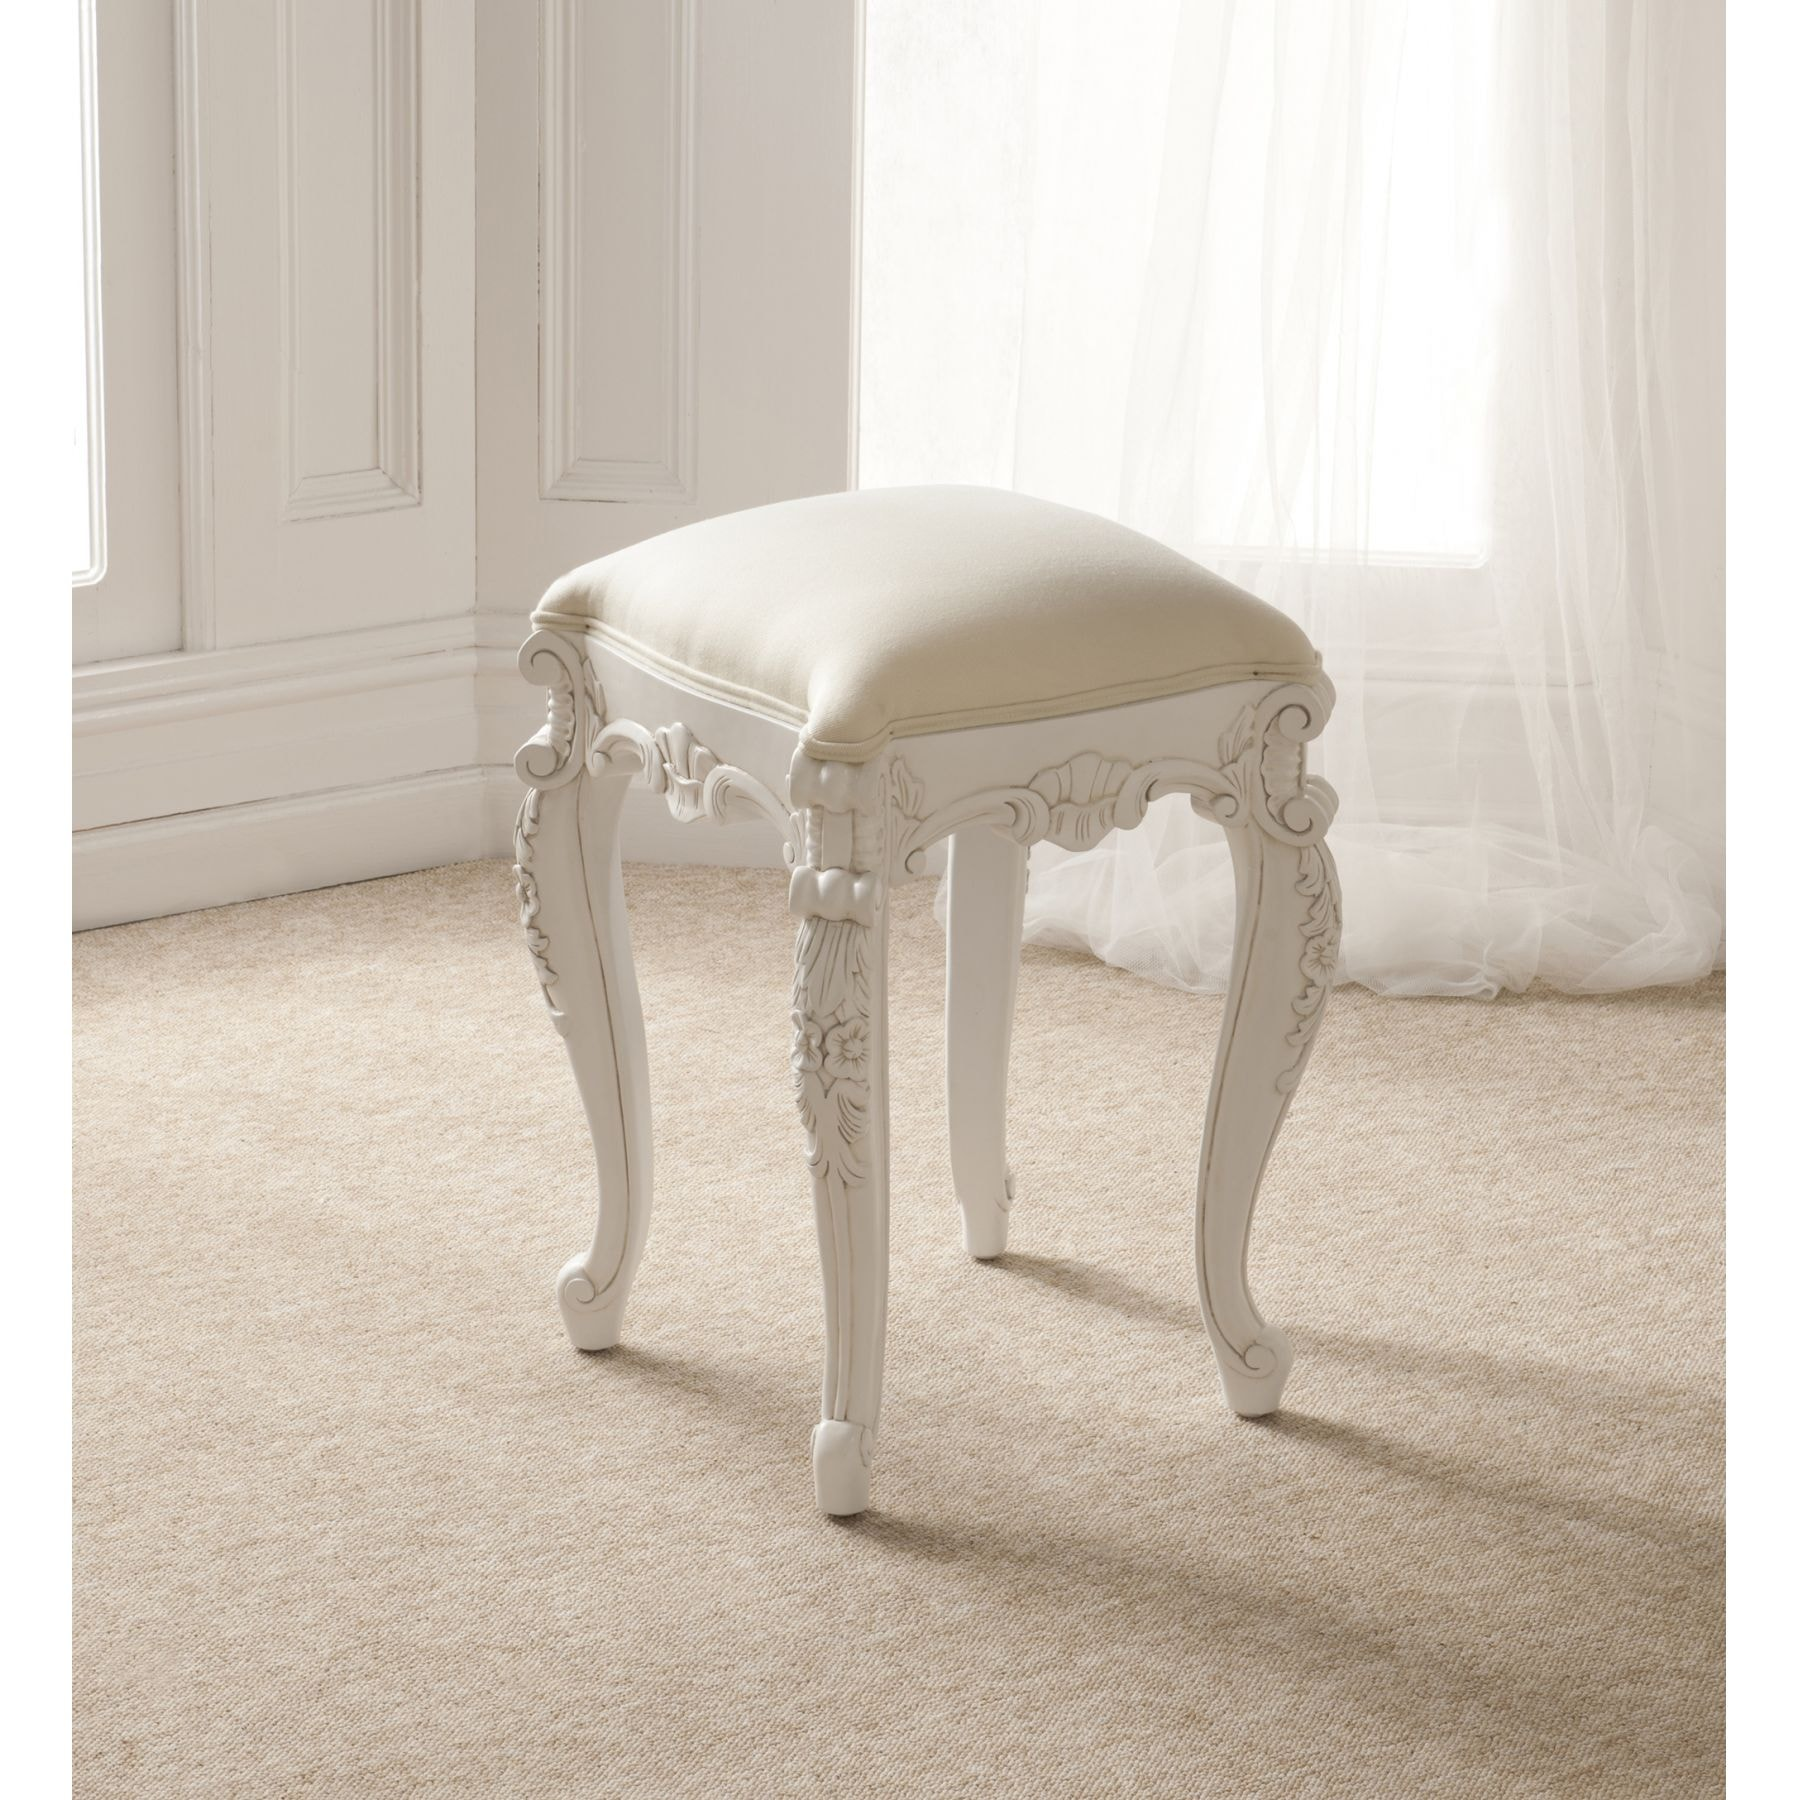 Rococo Antique French Stool